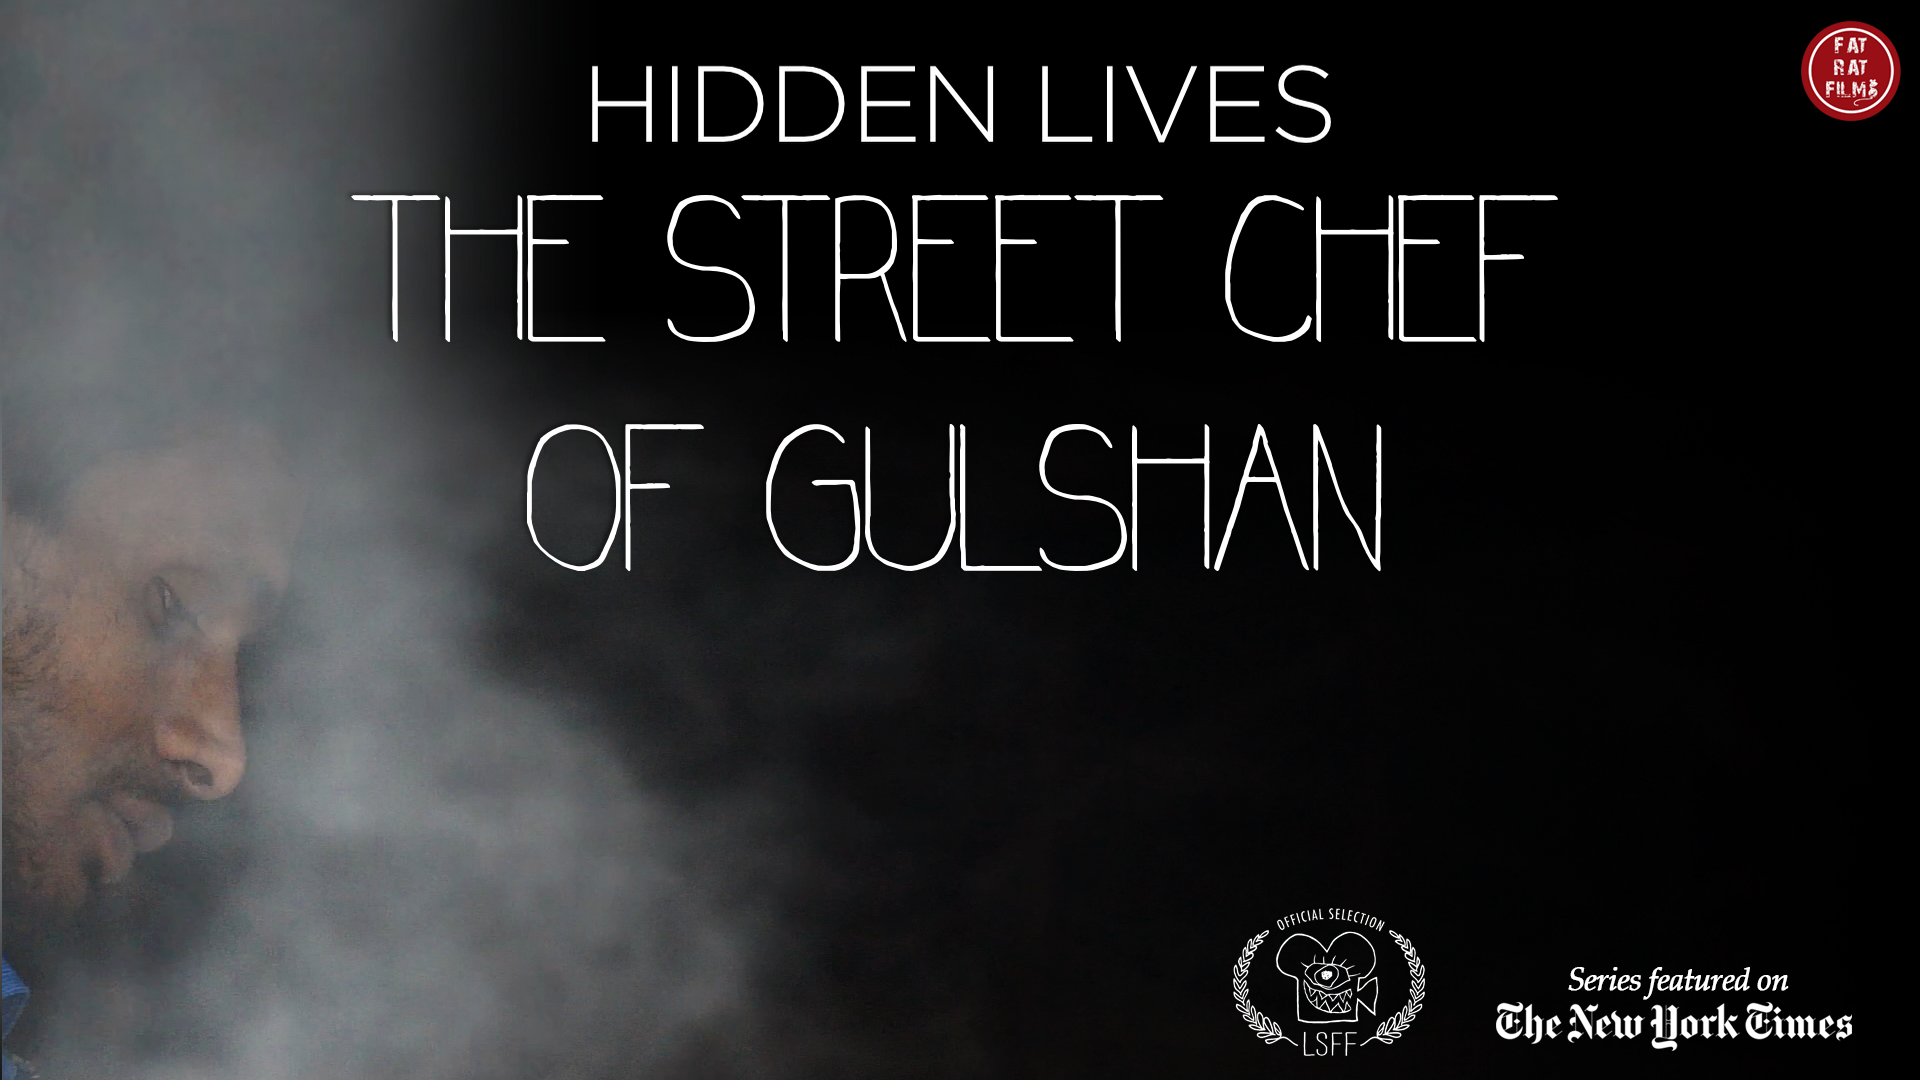 'Hidden Lives: The Street Chef of Gulshan'-Film Cover